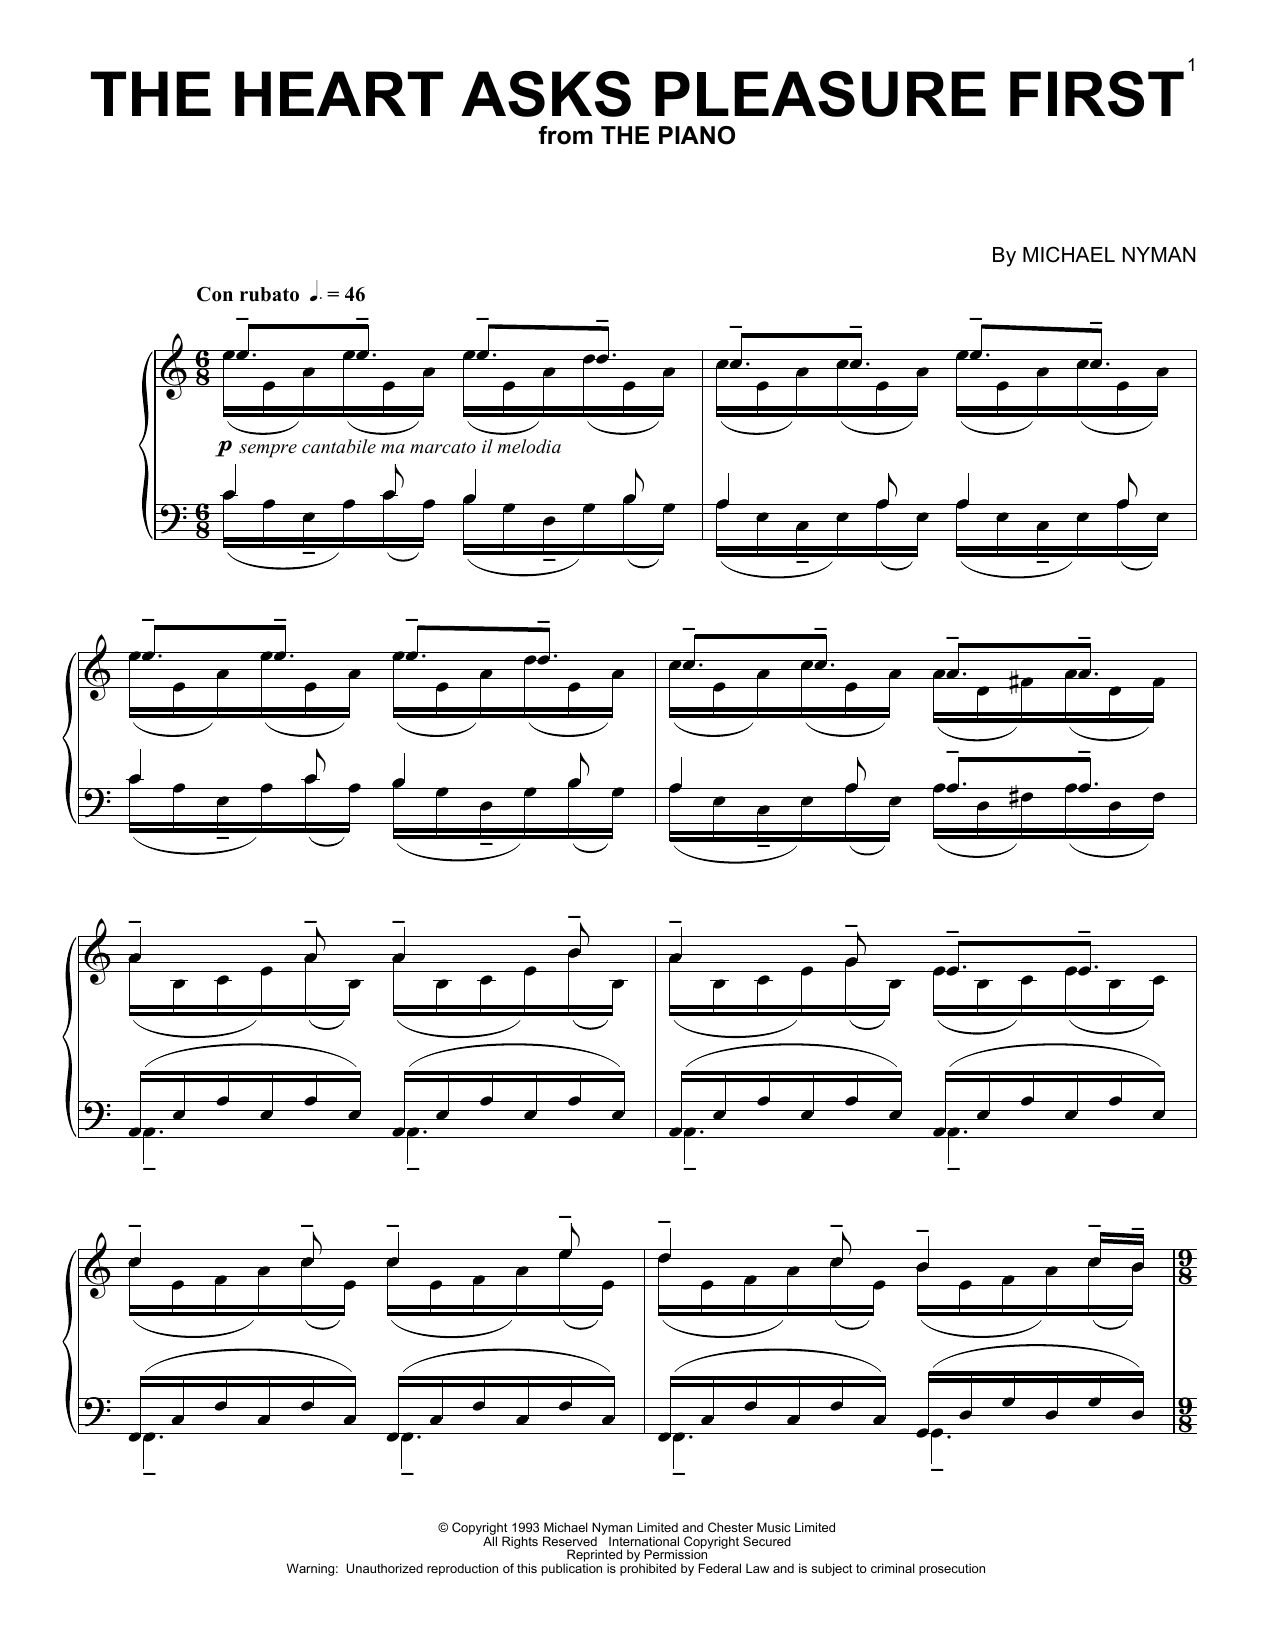 The heart asks pleasure first free piano sheet music